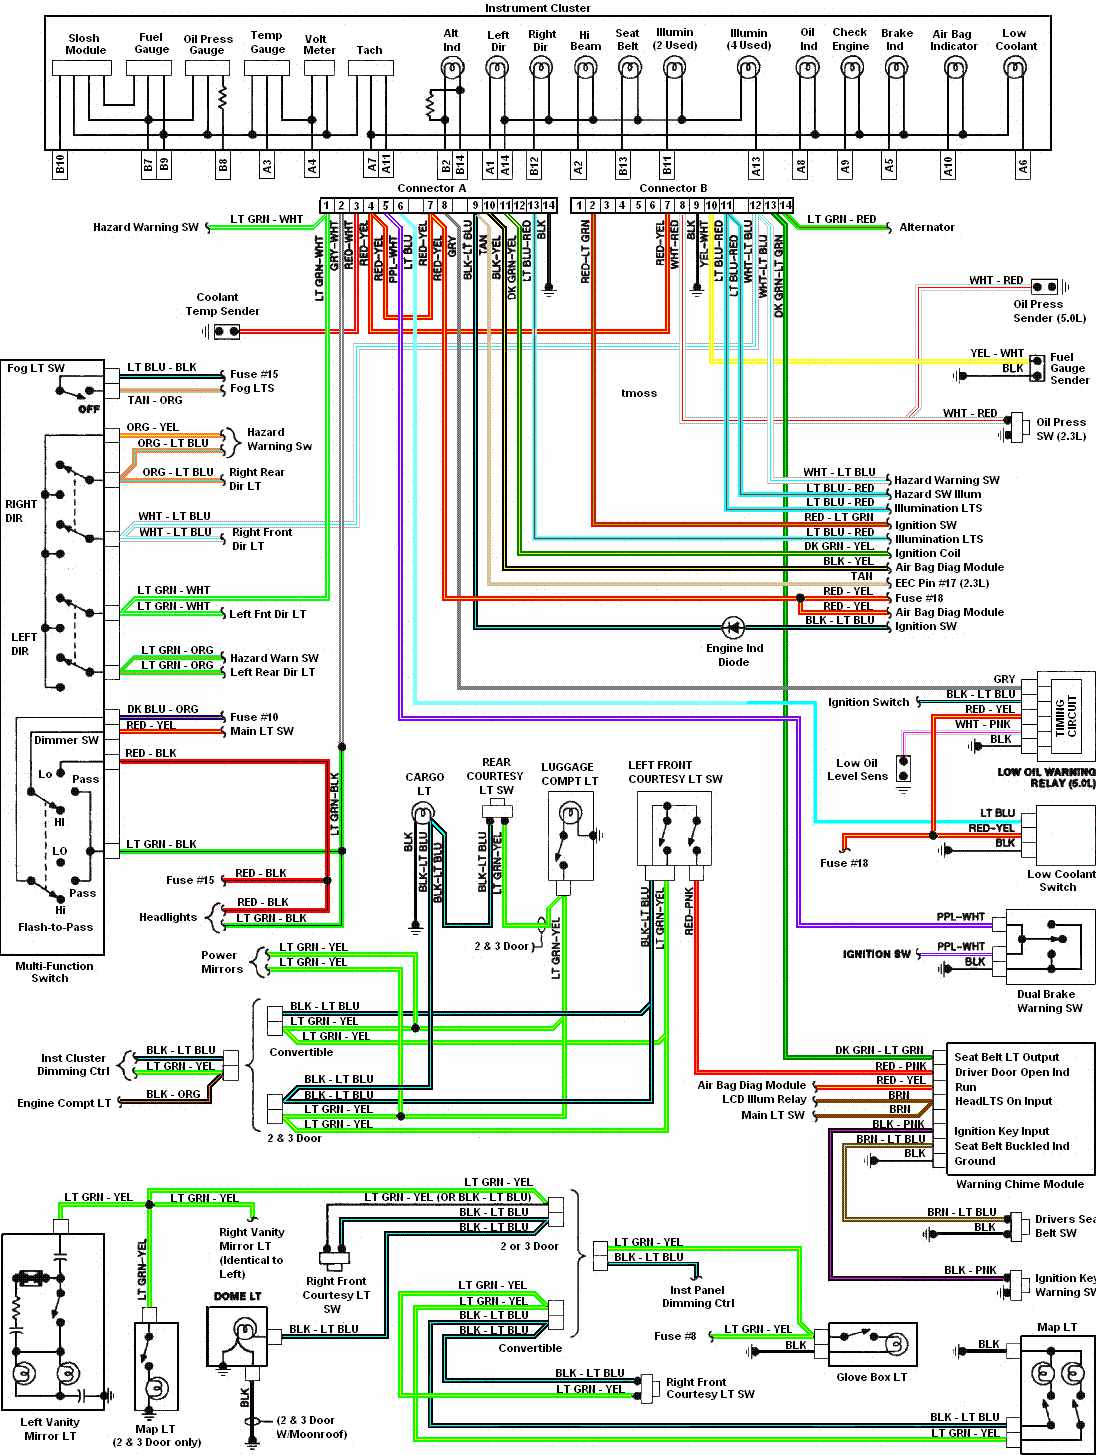 Wiring diagrams besides Honda Xl100 Electrical Wiring Diagram further Windshield Wiper Relay Switch Location furthermore 2004 Ford Ranger Wiring Diagram New 2006 2 together with 2007 Ford Mustang Fuse Box Diagram. on 1991 ford taurus fuse box diagram